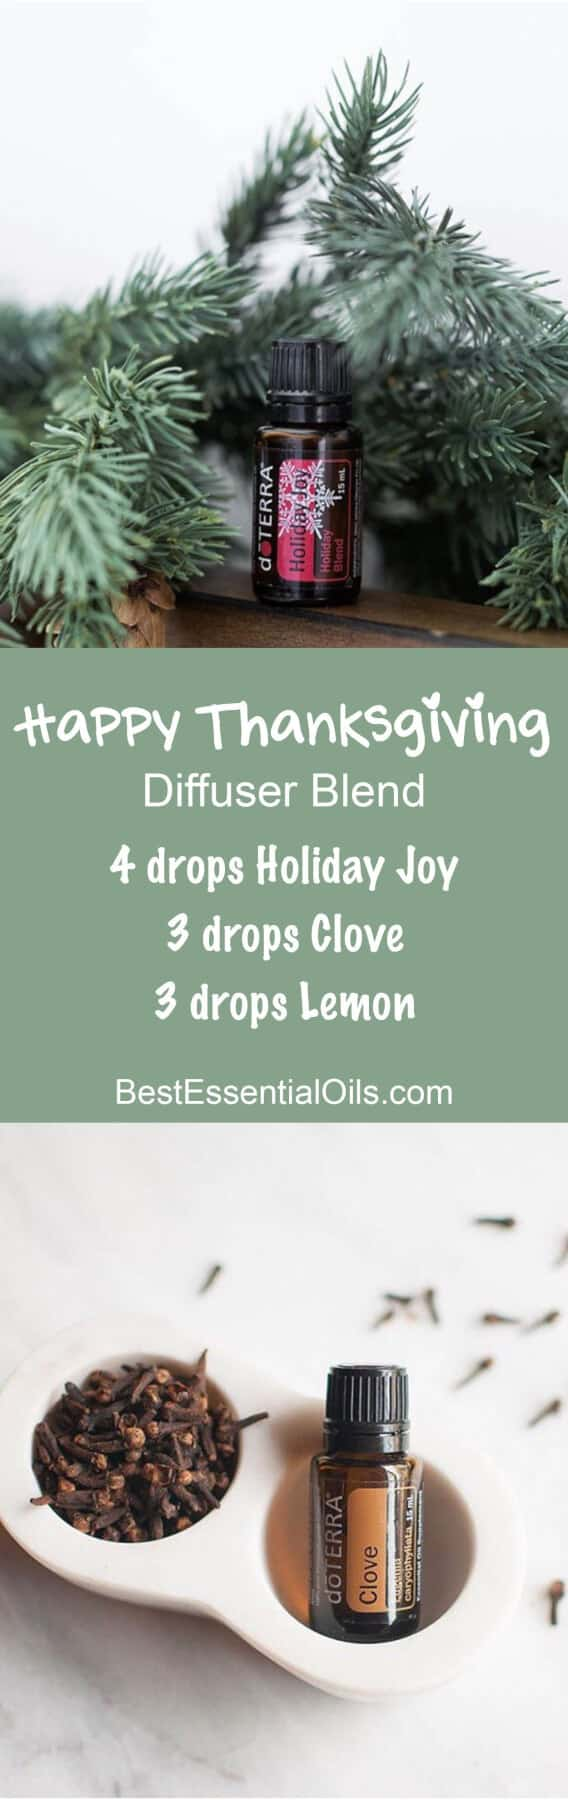 Happy Thanksgiving doTERRA Diffuser Blend